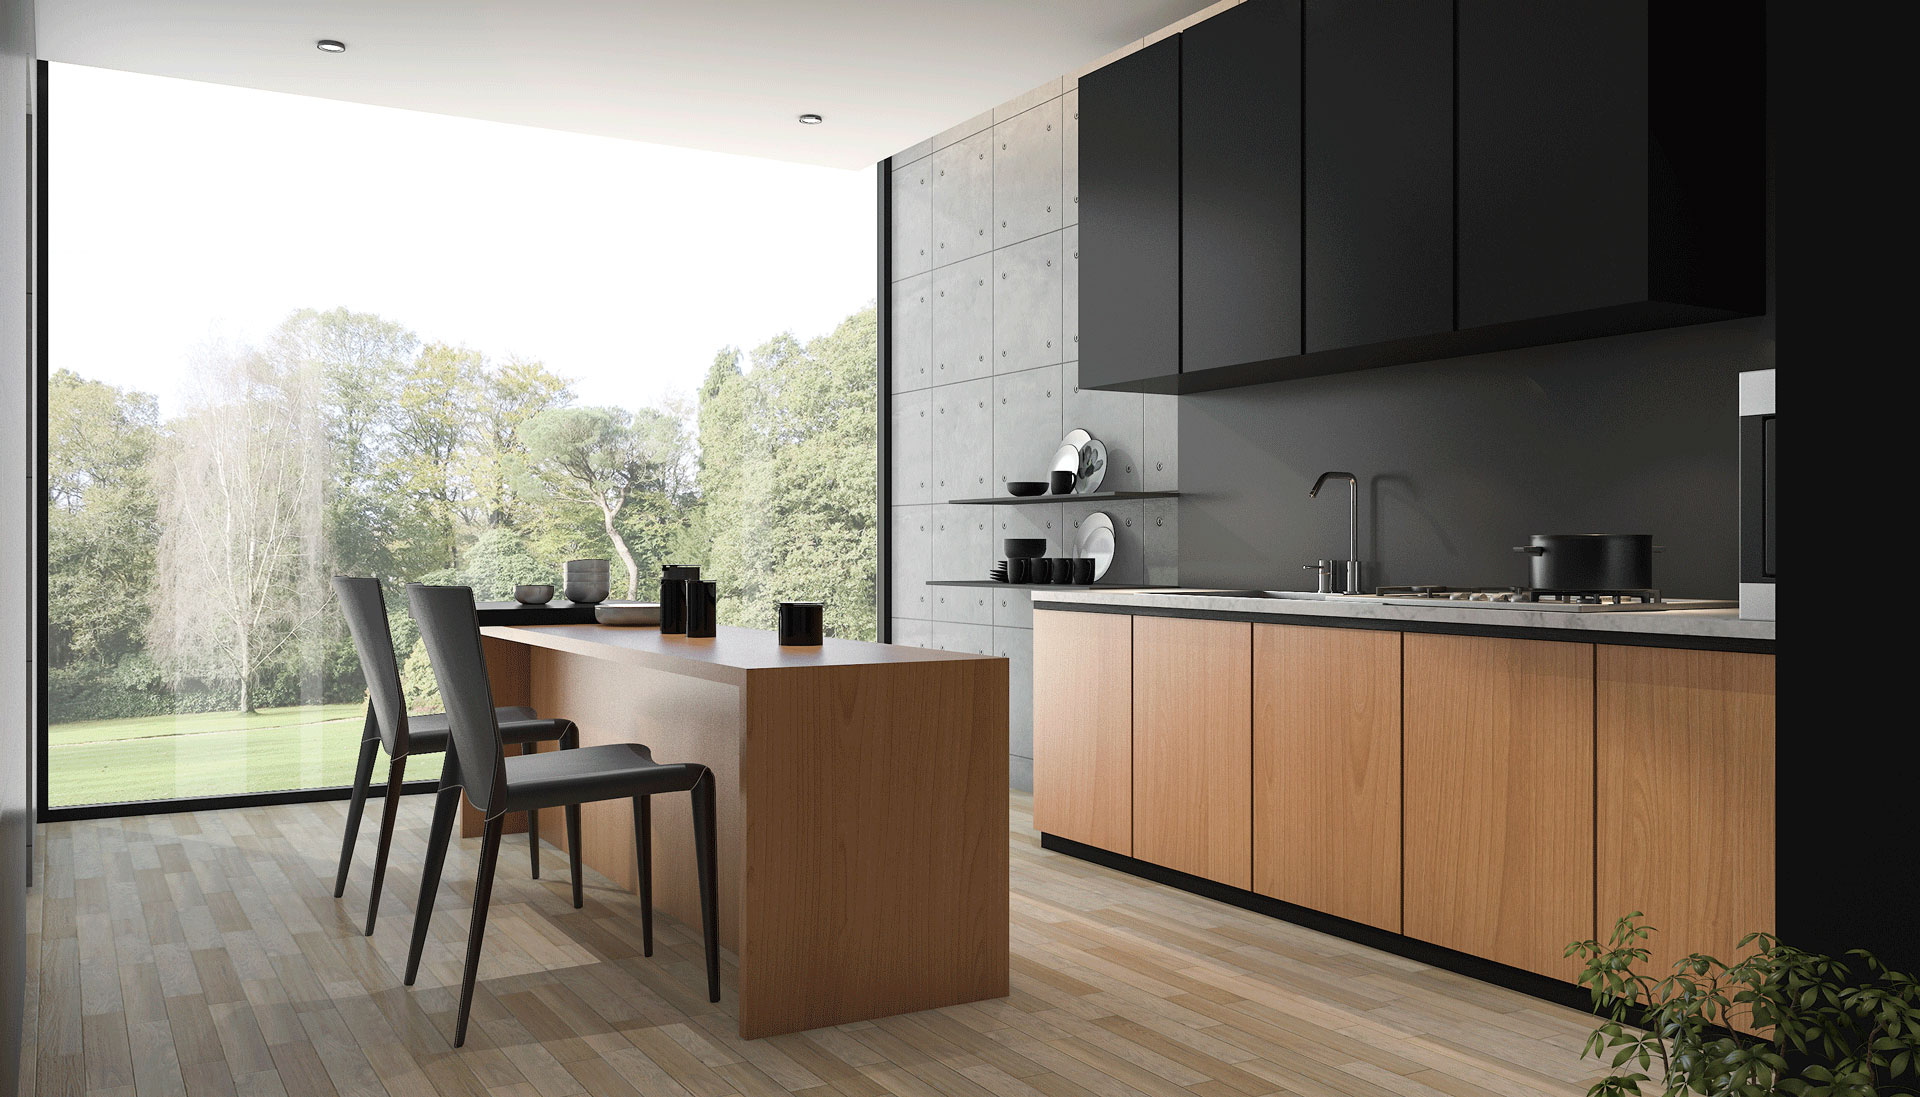 Perhaps people who prefer the open concept kitchens are those who have taken to minimalism these kitchens do have everything you need and since they